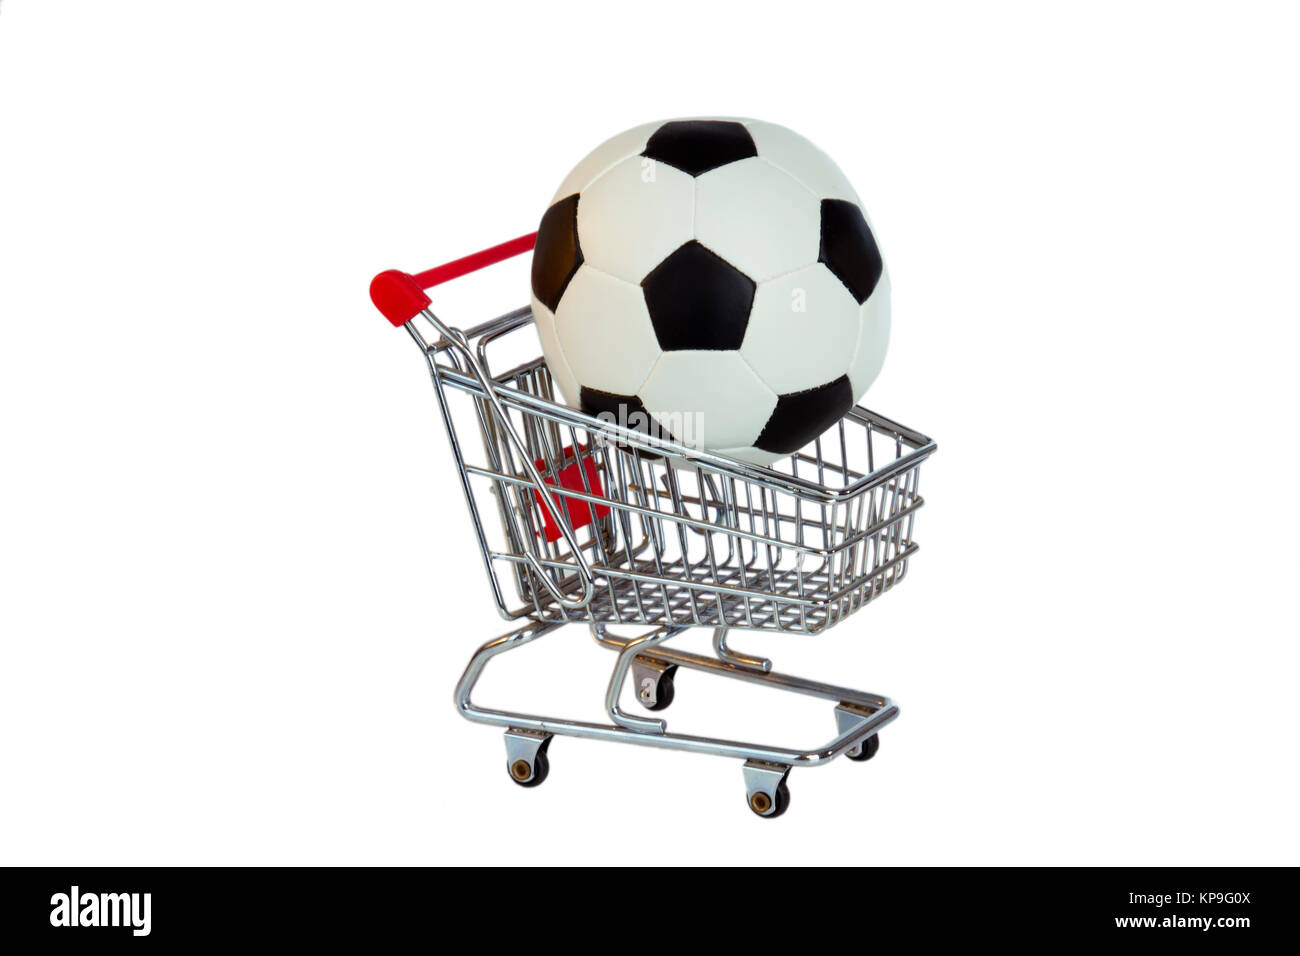 soccer in a shopping cart - Stock Image